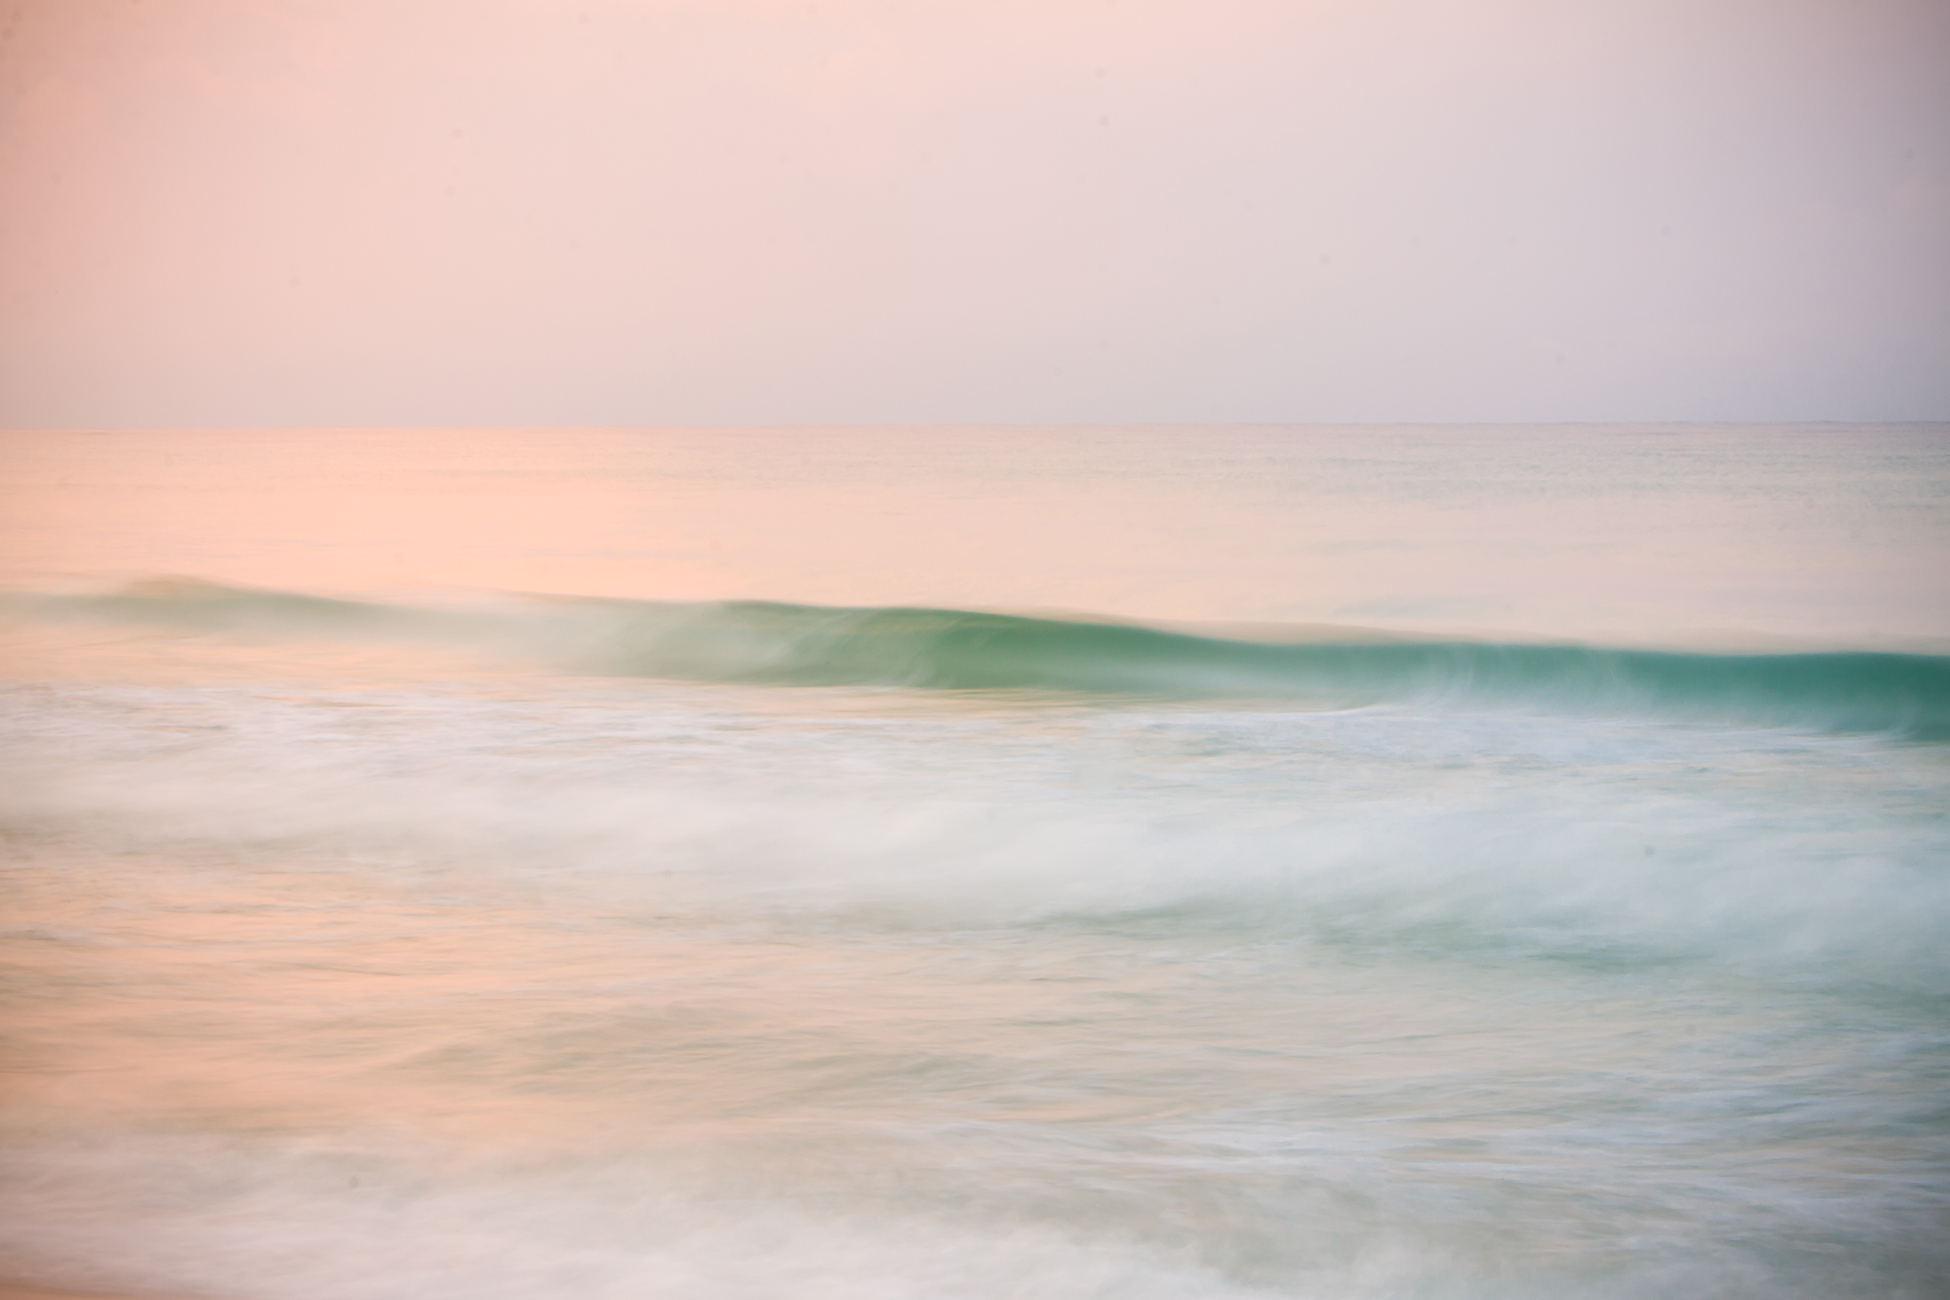 Colorful sunrise reflected in a moving wave.